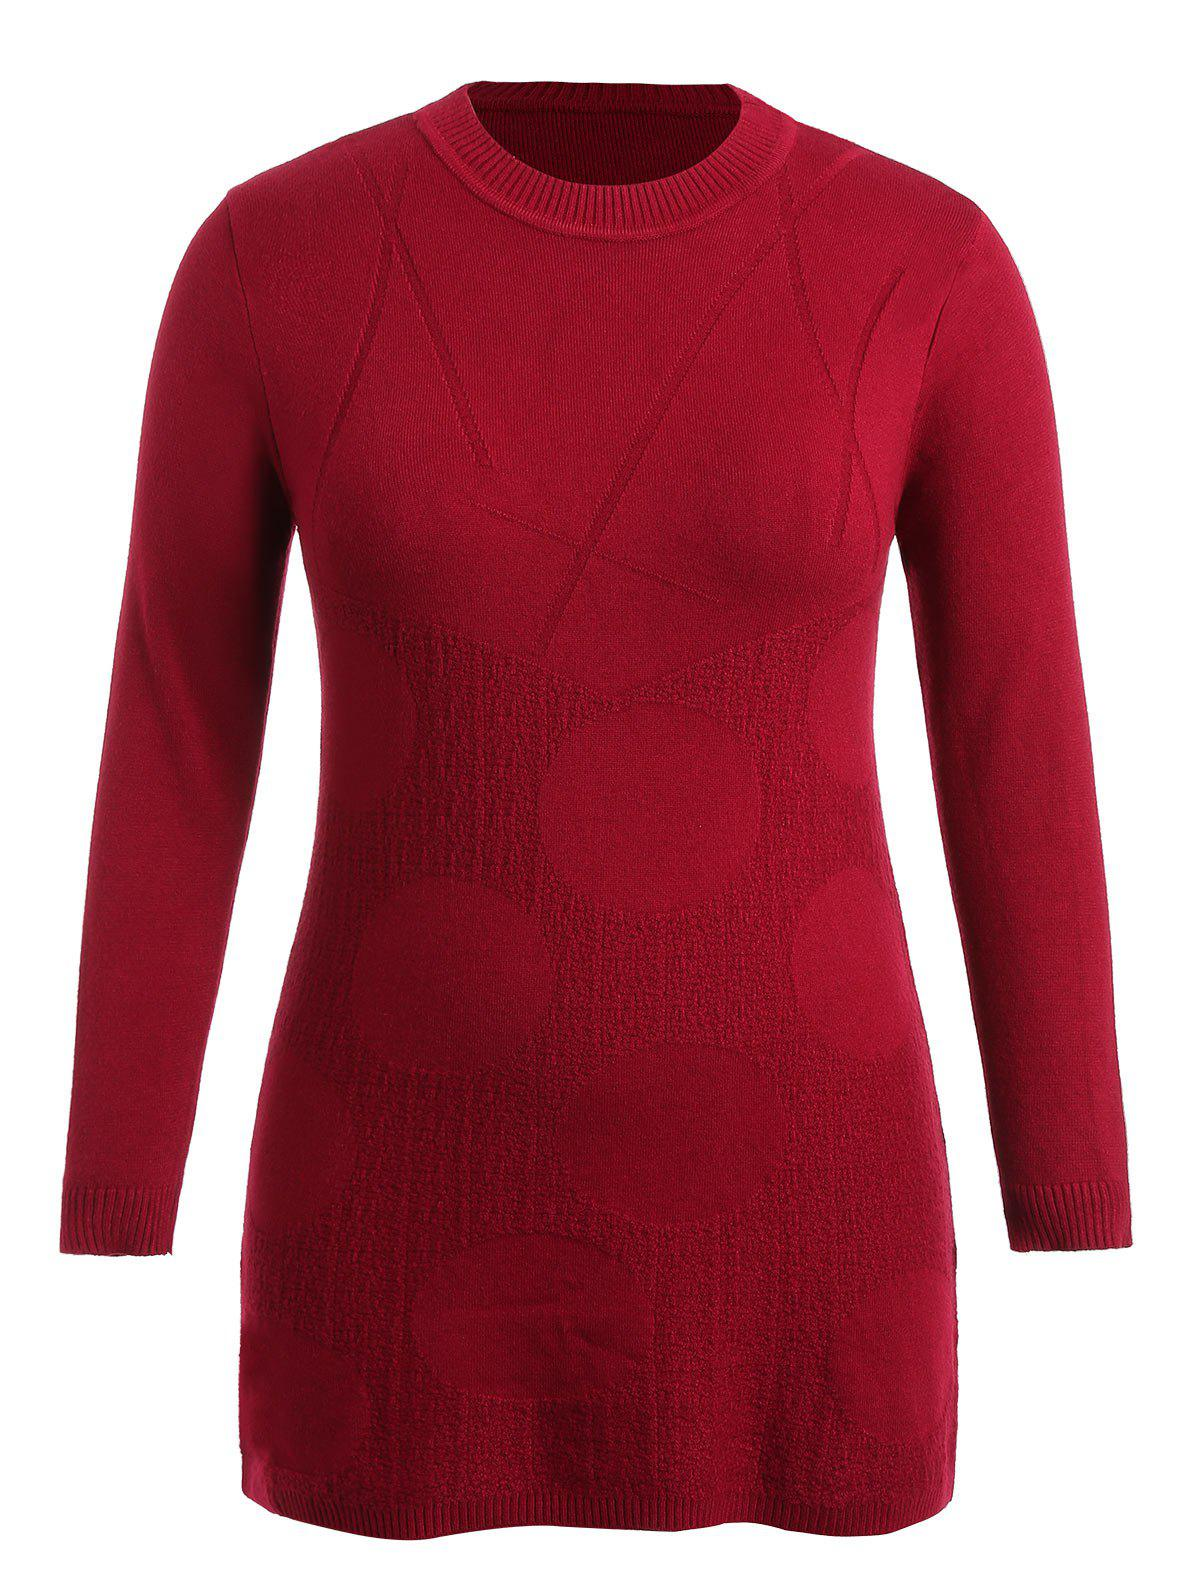 Fashion Patterned Plus Size Round Neck Sweater Dress